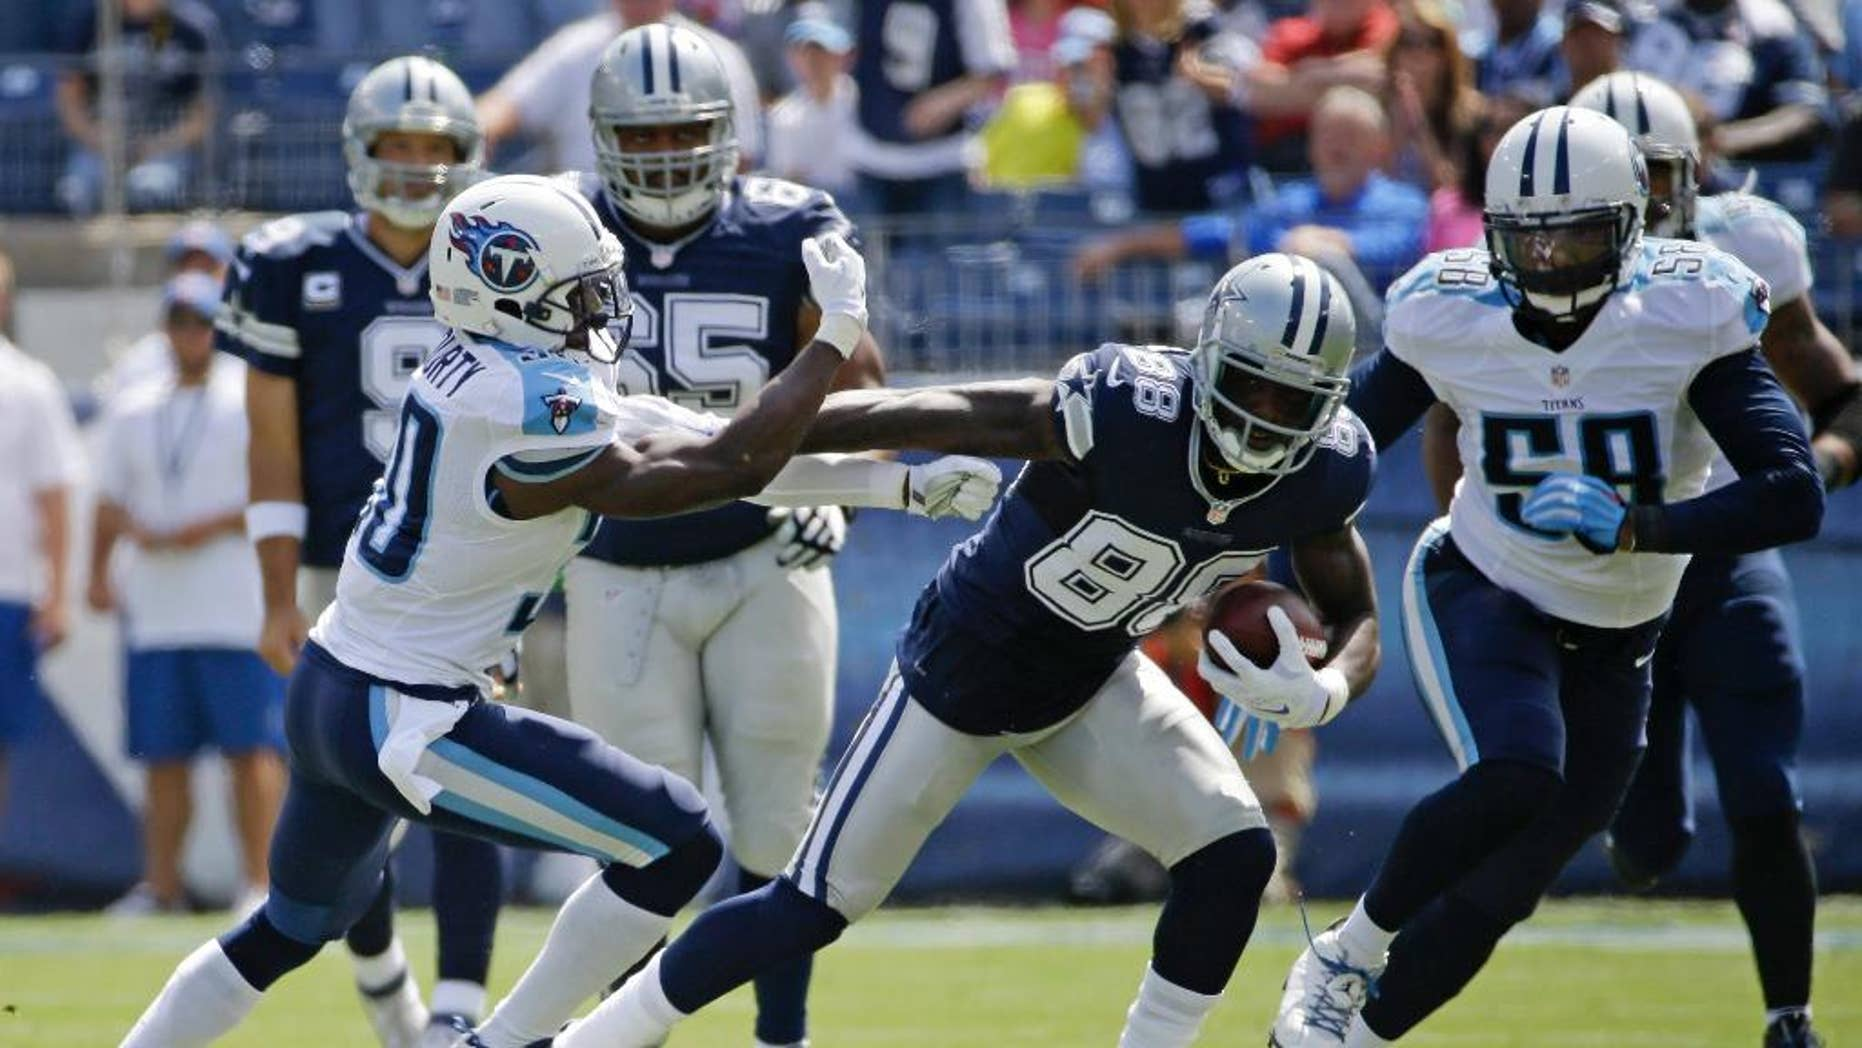 Dallas Cowboys wide receiver Dez Bryant (88) tries to get past Tennessee Titans cornerback Jason McCourty (30) in the first quarter of an NFL football game Sunday, Sept. 14, 2014, in Nashville, Tenn. (AP Photo/Wade Payne)